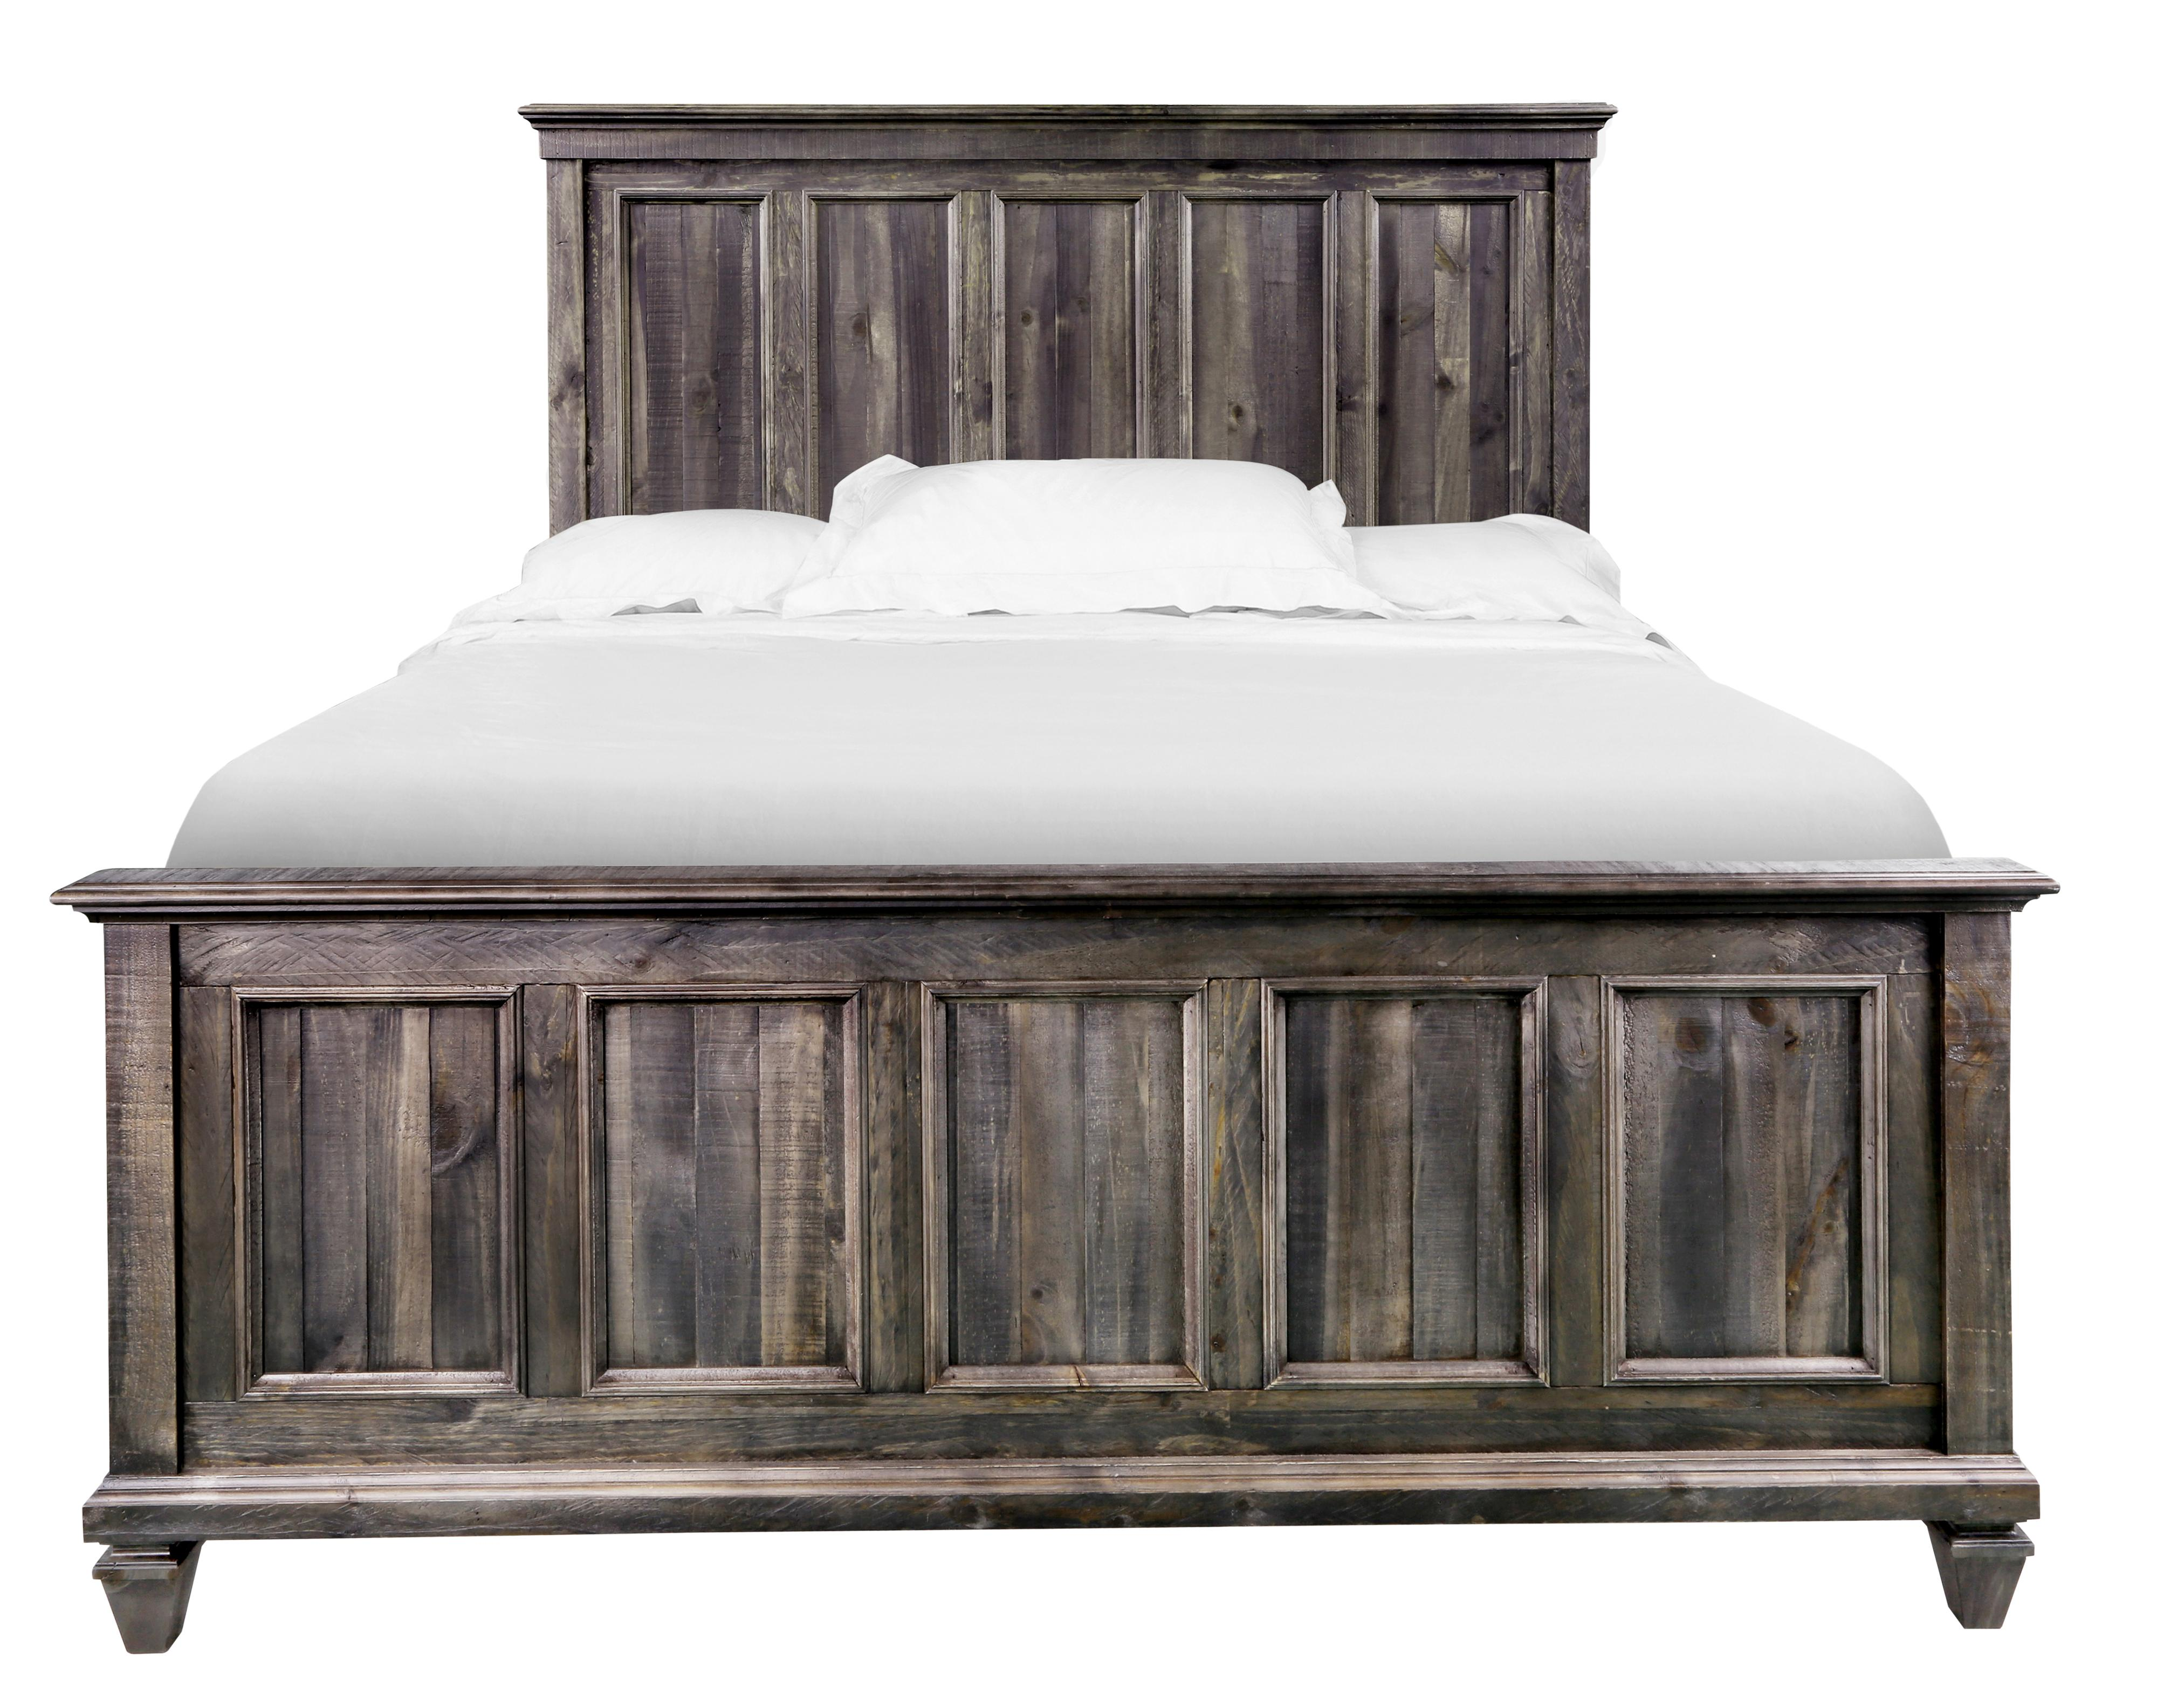 Calistoga King Bed by Magnussen Home at Darvin Furniture